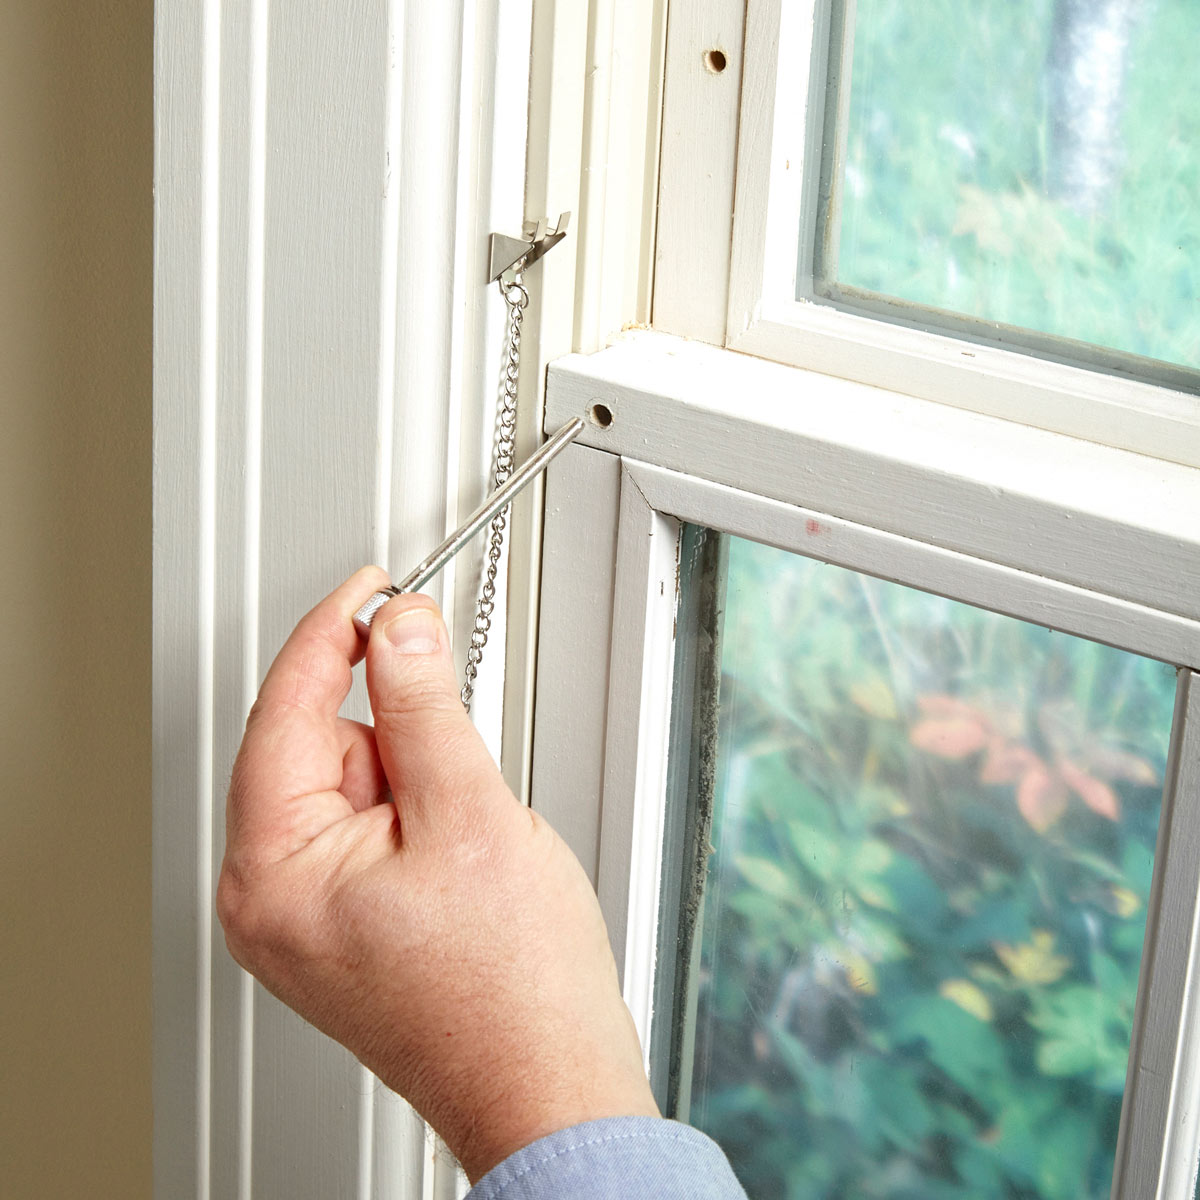 Pin lock for window home safety